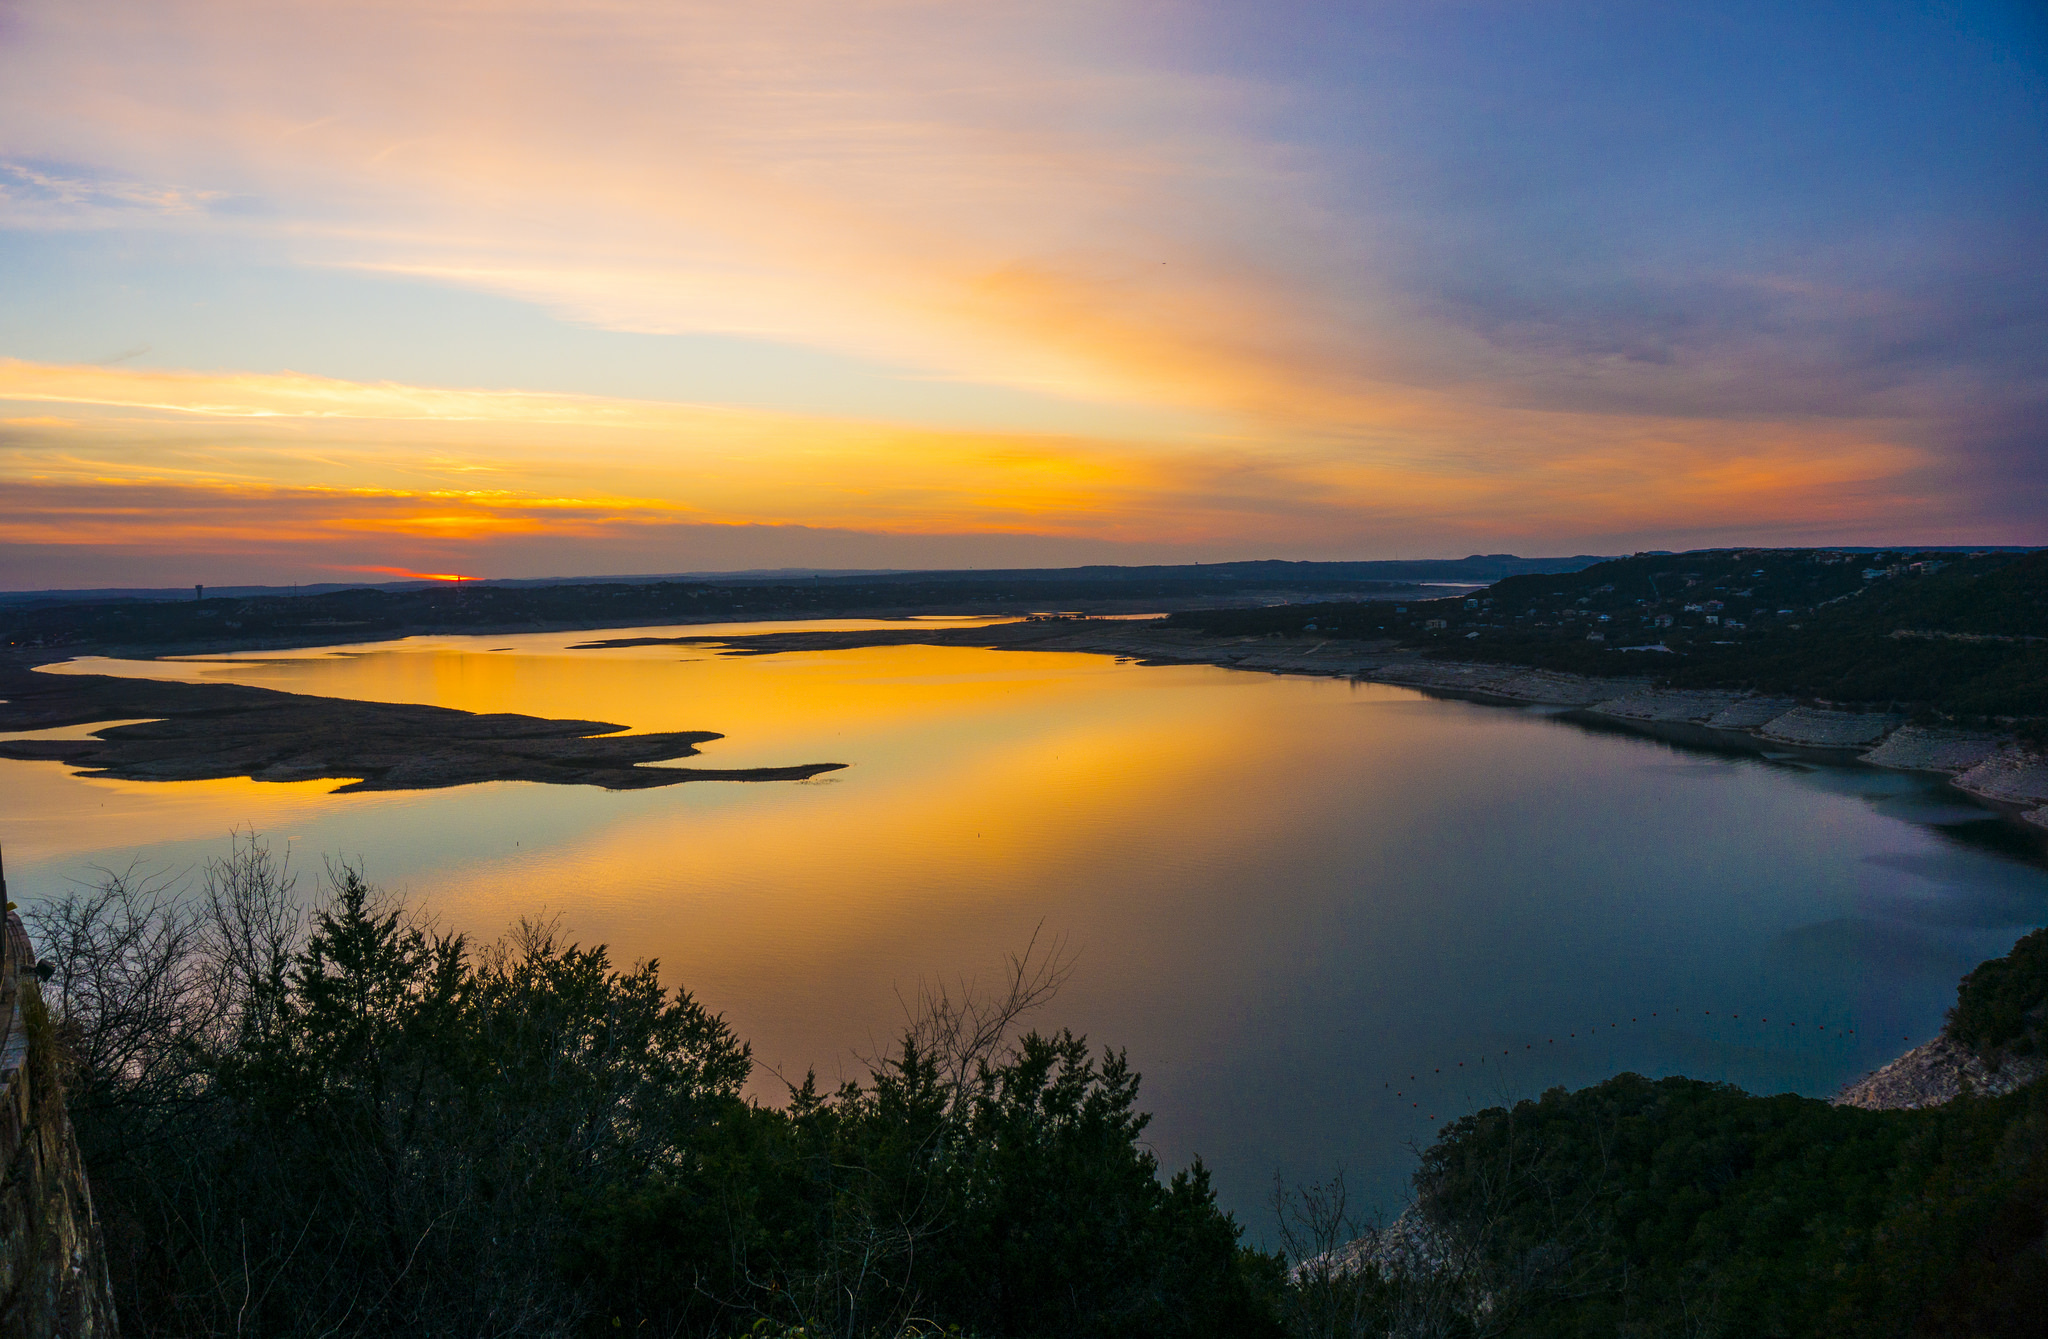 Lake Travis Sunset © Anthony Quintano/Flickr